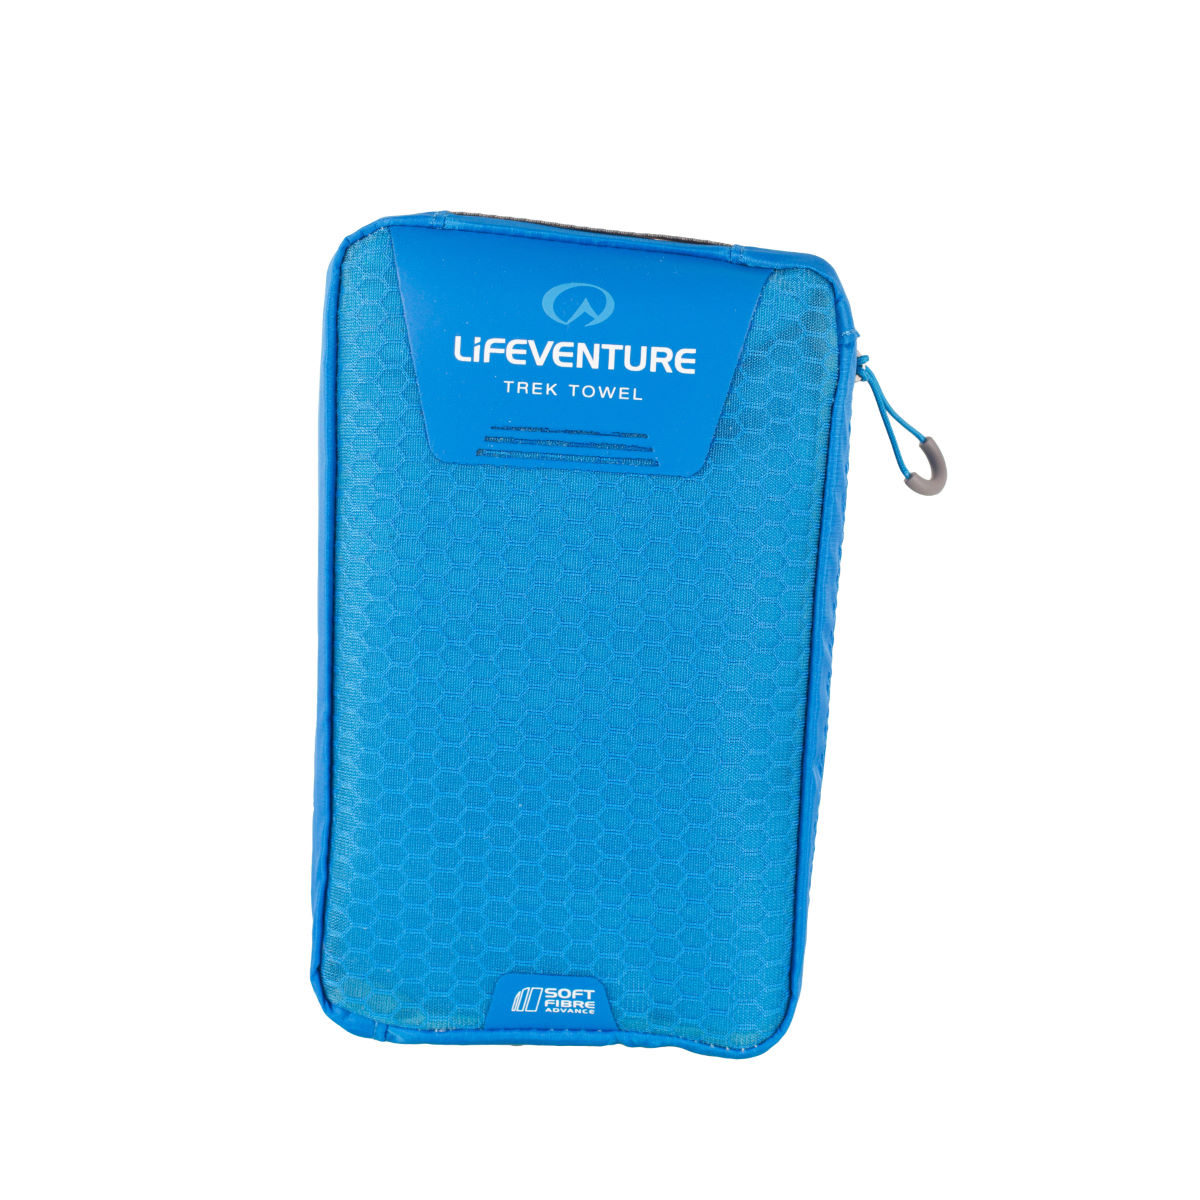 Serviette Lifeventure Soft Fibre Advance - Giant Bleu Tentes